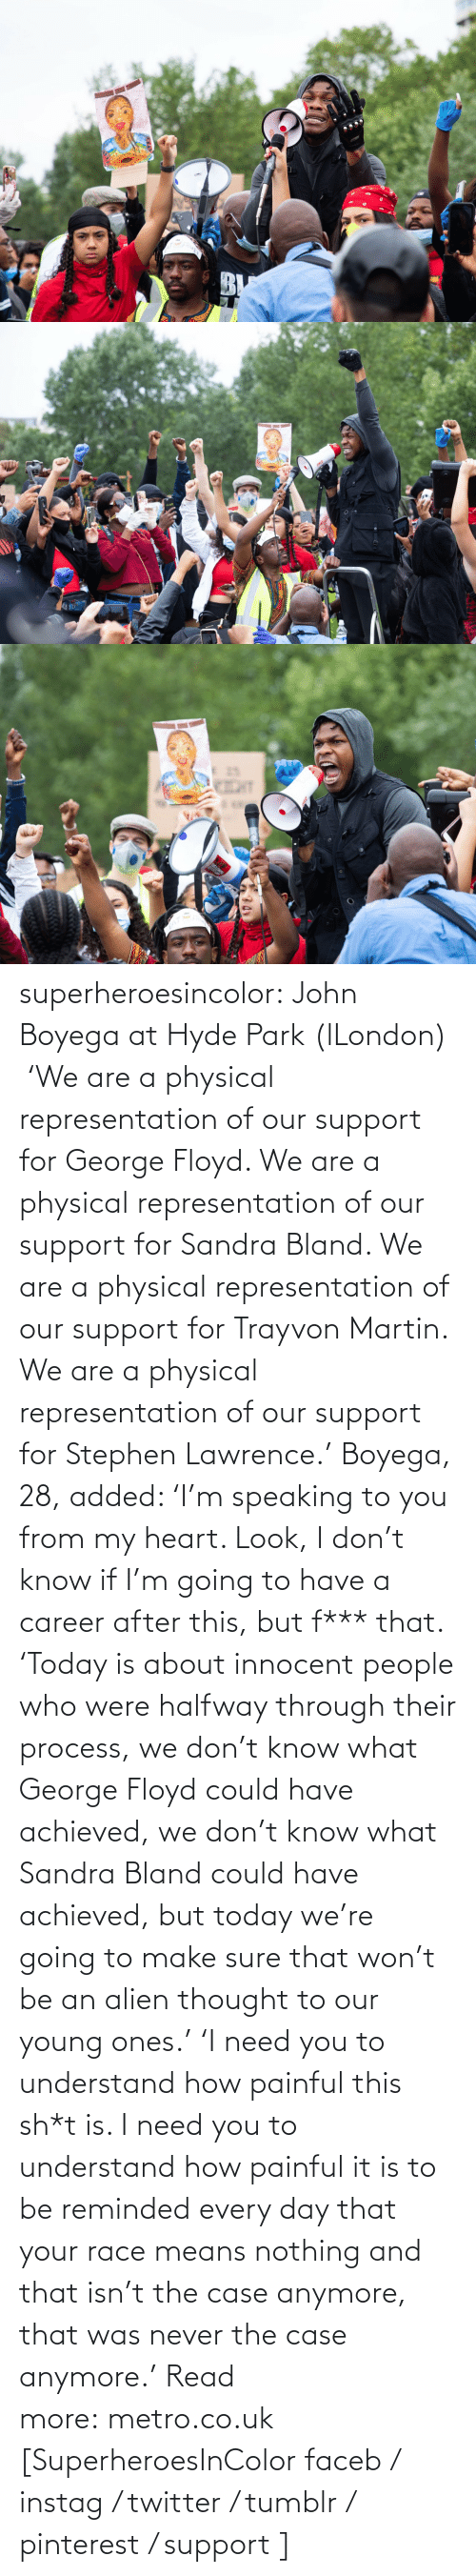 gyroscope: superheroesincolor:  John Boyega at Hyde Park (lLondon)     'We are a physical representation of our support for George Floyd. We are a physical representation of our support for Sandra Bland. We are a physical representation of our support for Trayvon Martin. We are a physical representation of our support for Stephen Lawrence.' Boyega, 28, added: 'I'm speaking to you from my heart. Look, I don't know if I'm going to have a career after this, but f*** that. 'Today is about innocent people who were halfway through their process, we don't know what George Floyd could have achieved, we don't know what Sandra Bland could have achieved, but today we're going to make sure that won't be an alien thought to our young ones.' 'I need you to understand how painful this sh*t is. I need you to understand how painful it is to be reminded every day that your race means nothing and that isn't the case anymore, that was never the case anymore.' Read more: metro.co.uk   [SuperheroesInColor faceb / instag / twitter / tumblr / pinterest / support ]